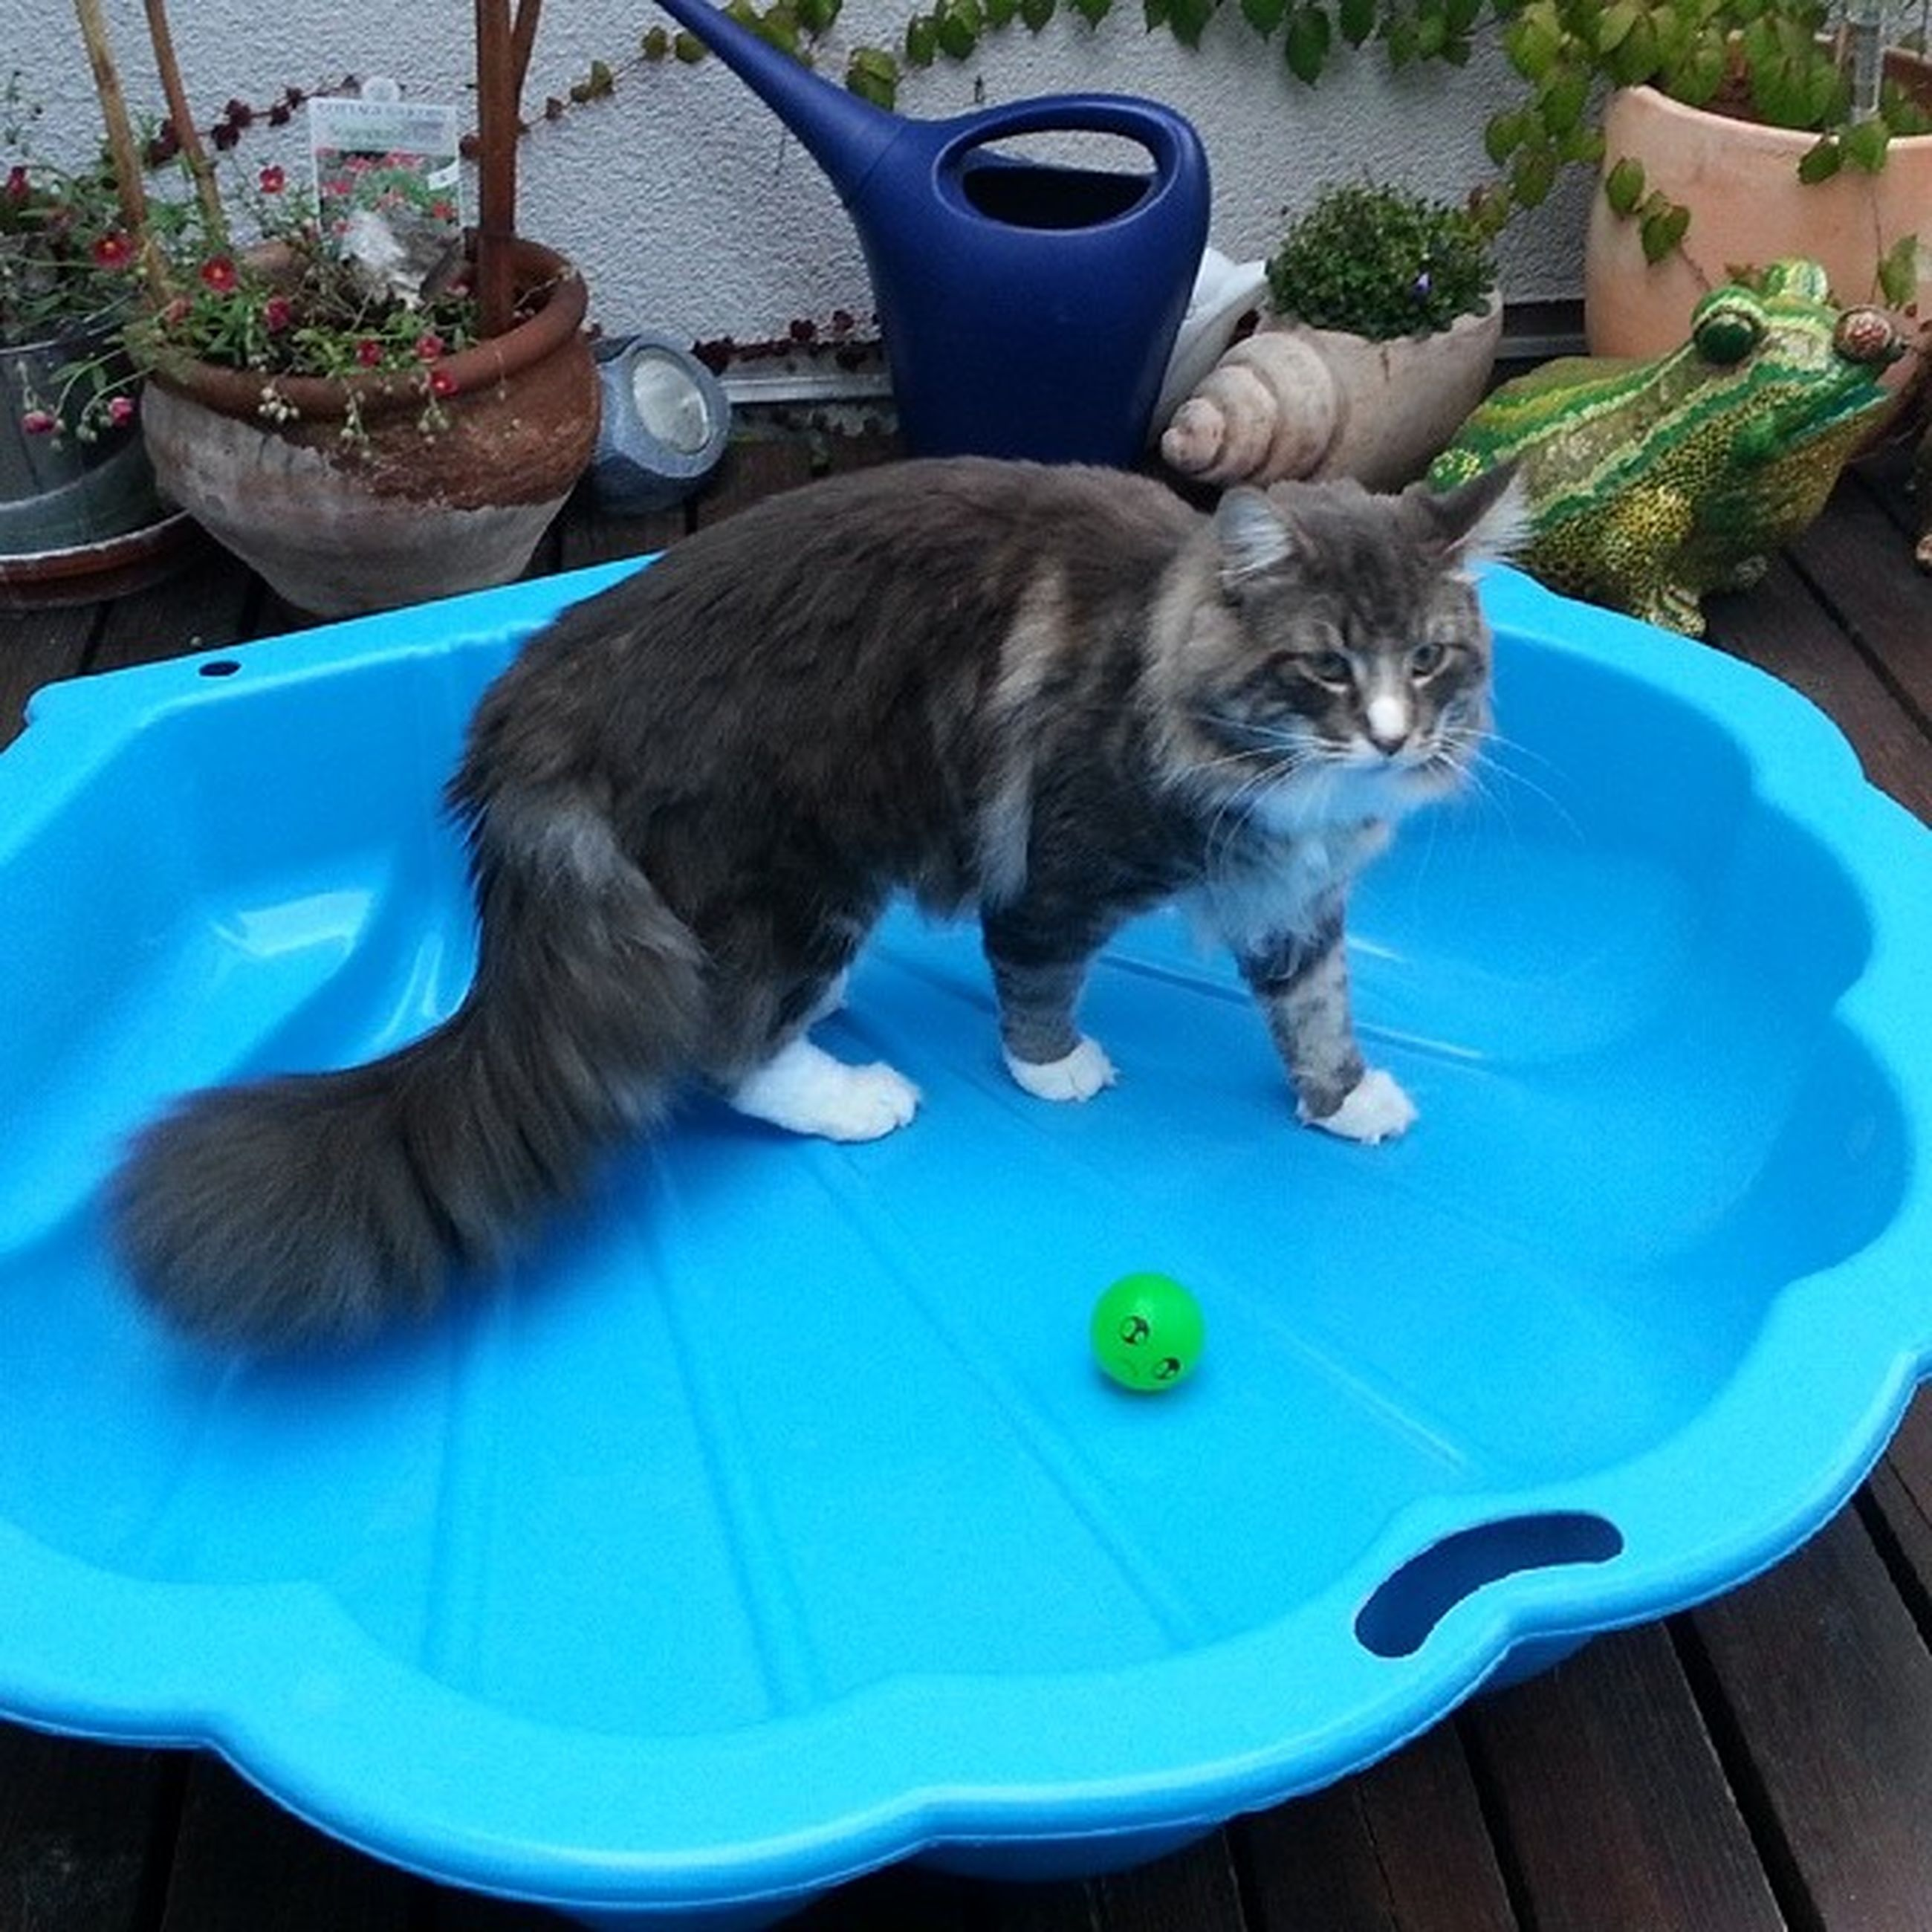 pets, one animal, domestic animals, animal themes, mammal, domestic cat, cat, high angle view, relaxation, feline, chair, sitting, full length, blue, swimming pool, table, lying down, resting, no people, indoors